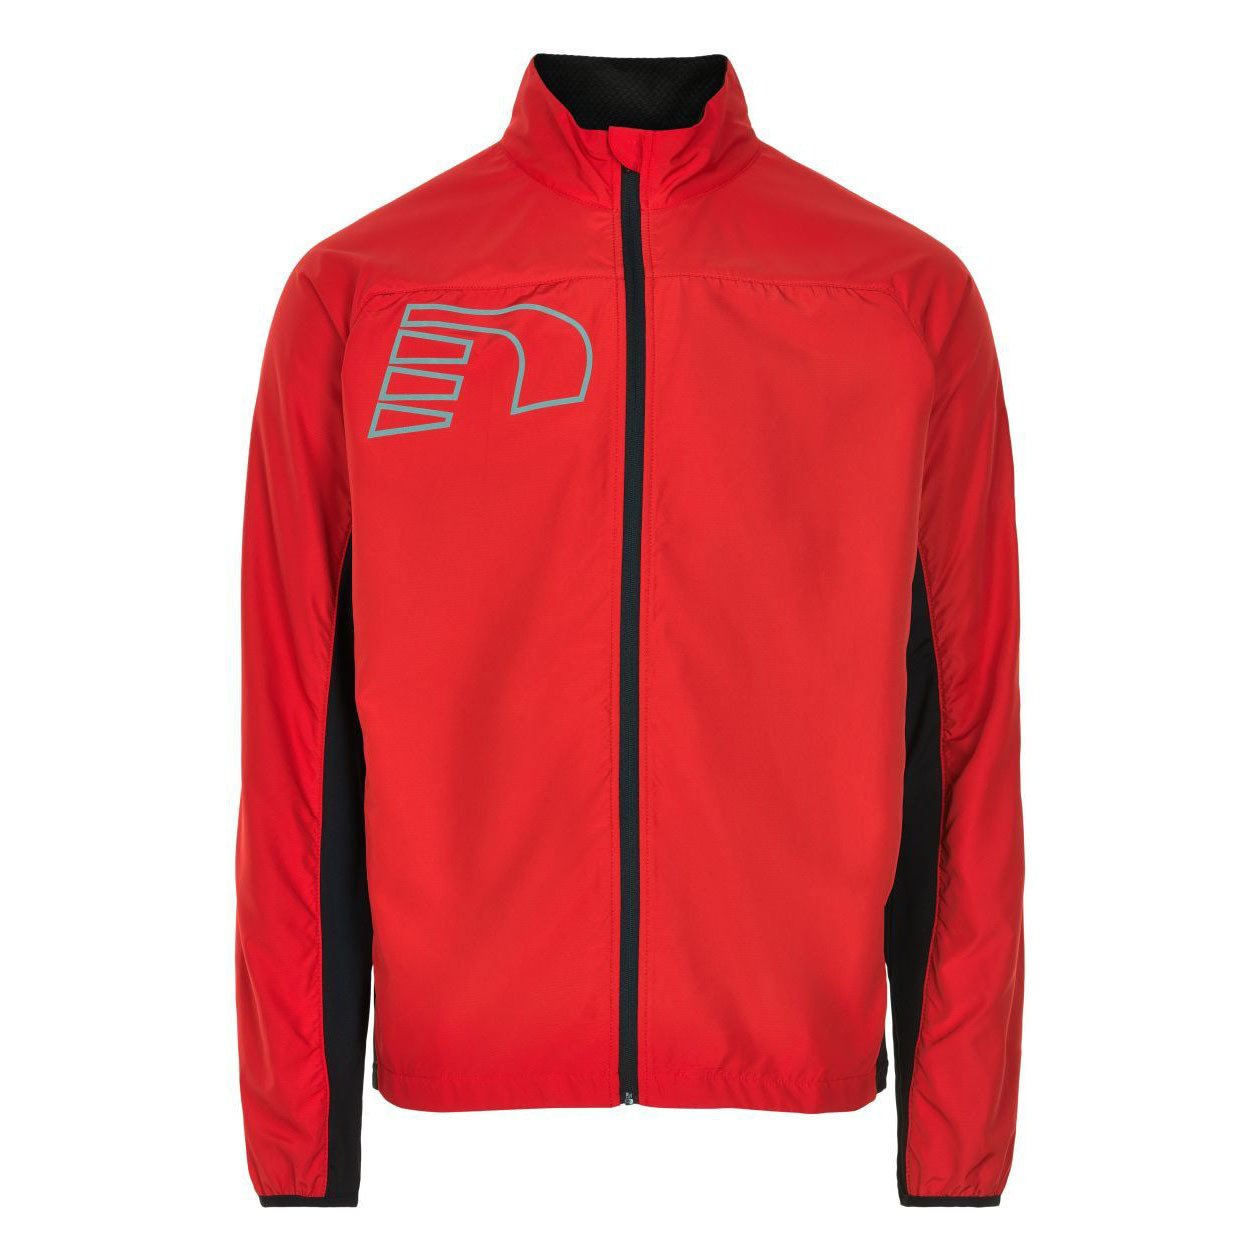 kurtka męska NEWLINE CORE CROSS JACKET / 17505-04 RunnersClub 42419